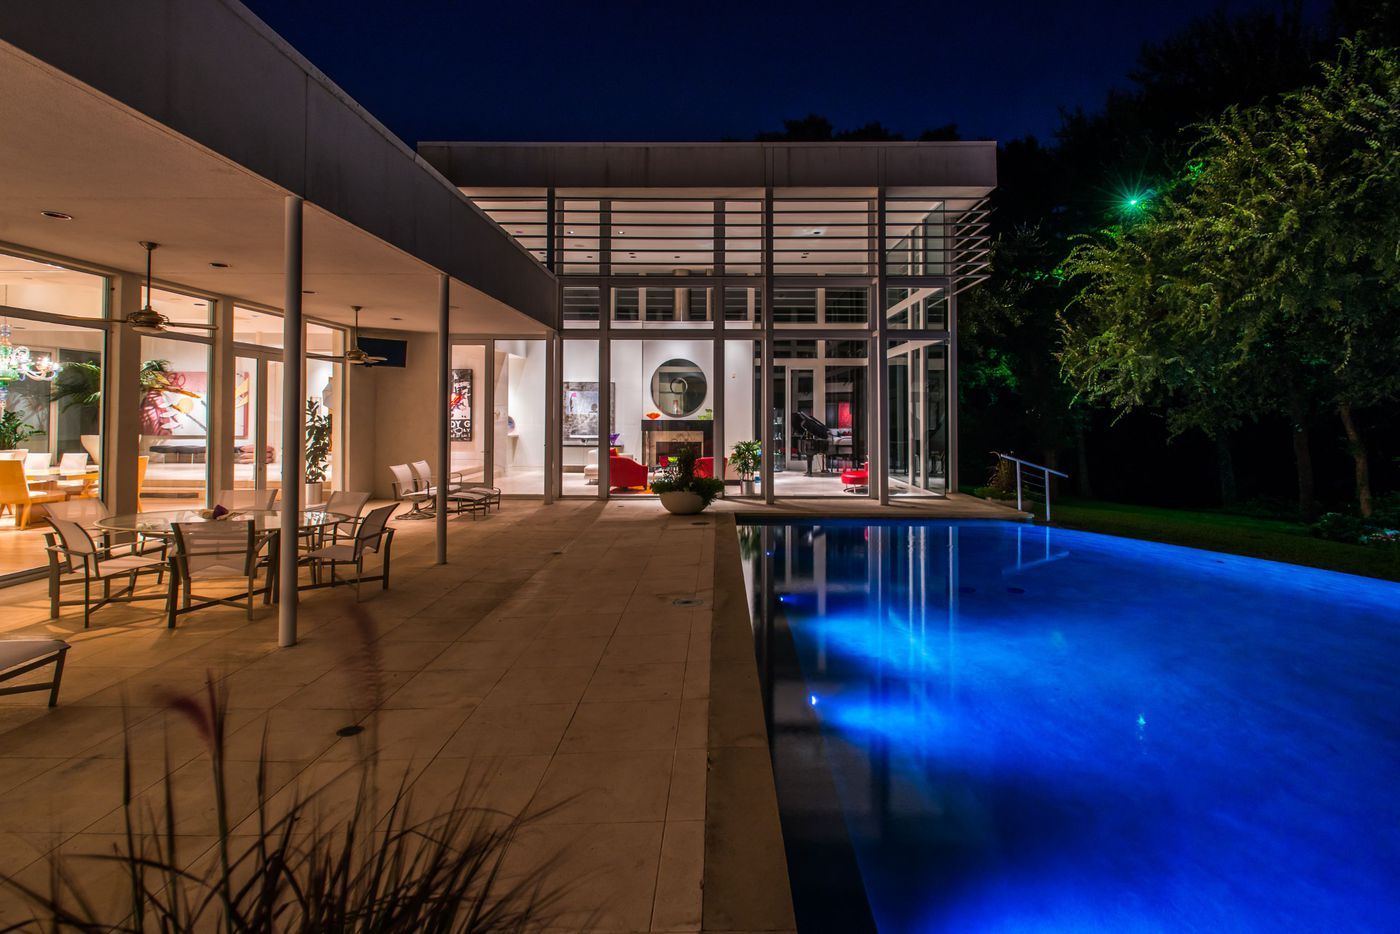 Take a look at the home at 4130 Cochran Chapel Road in Dallas, TX.